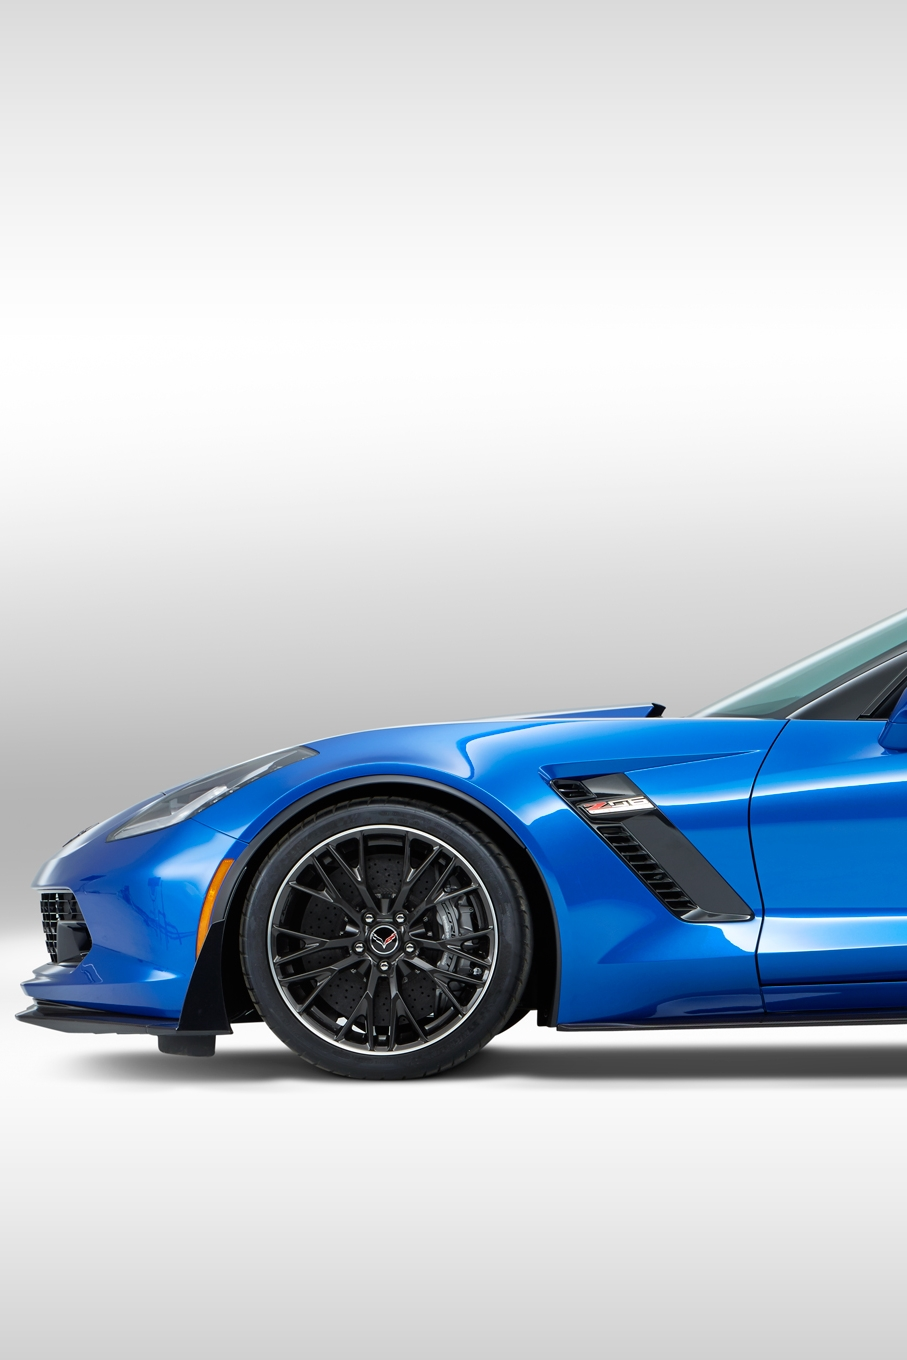 Most Expensive Chevrolet Cars - Chevrolet Corvette Z06 Convertible